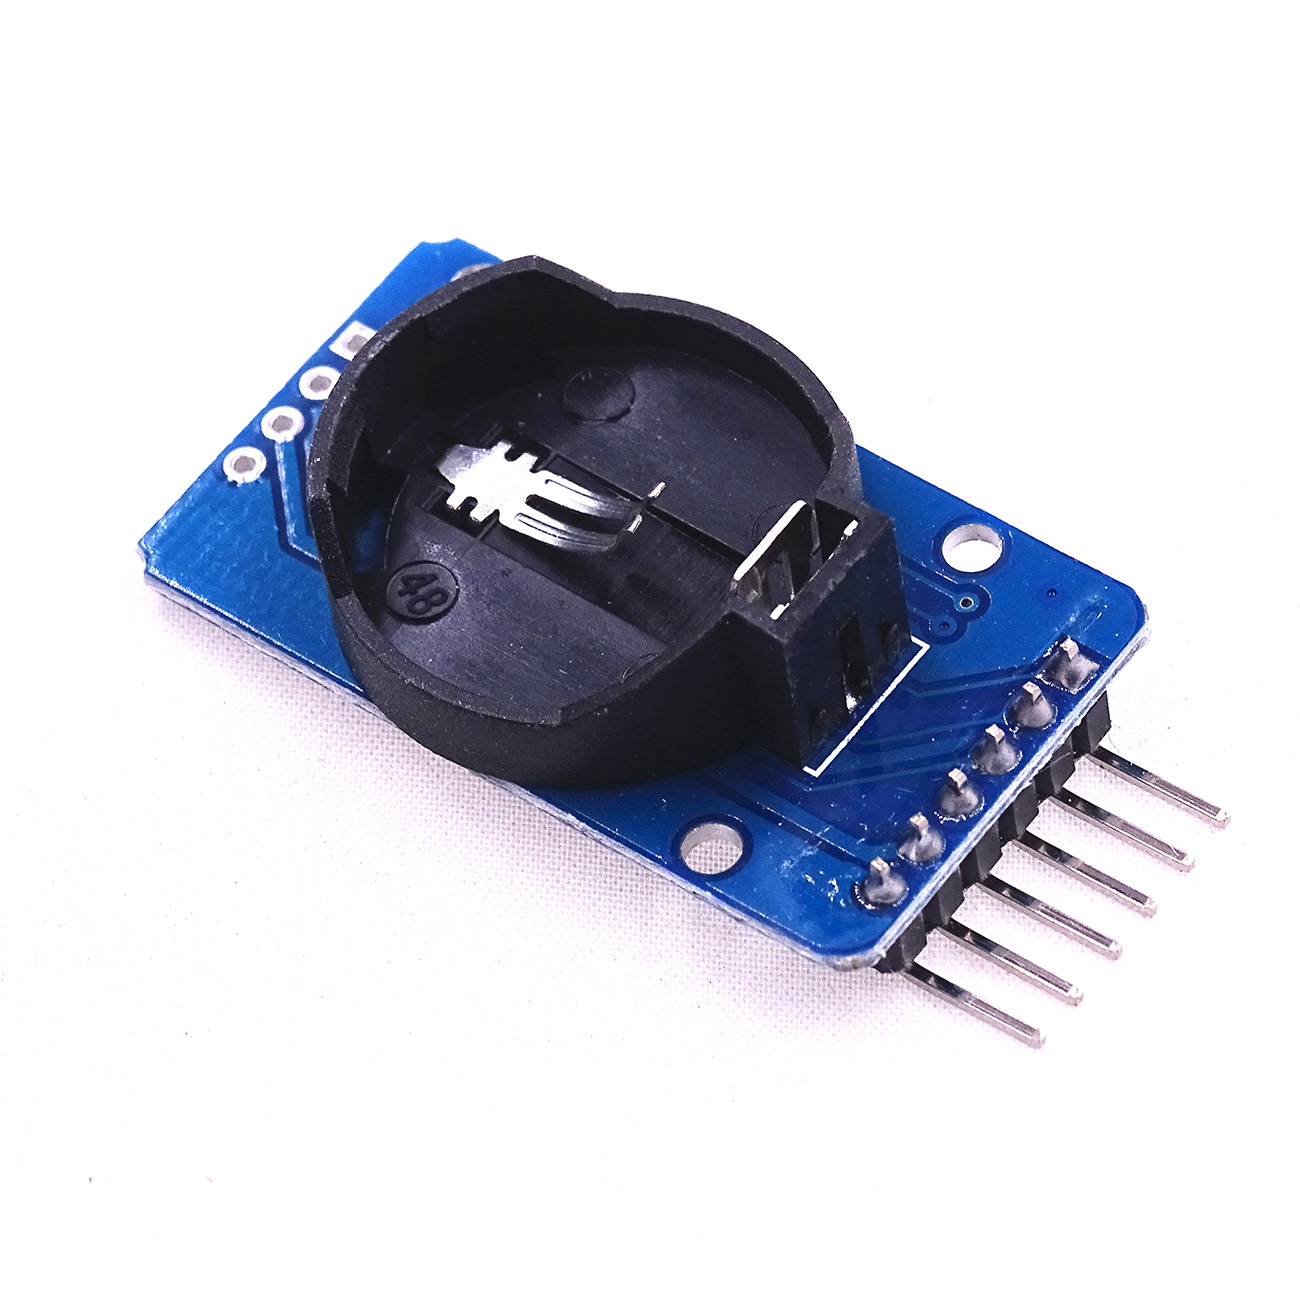 without Battery Ds3231 At24c32 Iic Module Precision Clock Module Ds3231sn Memory Module For Arduino Robot Toy Kit Diy